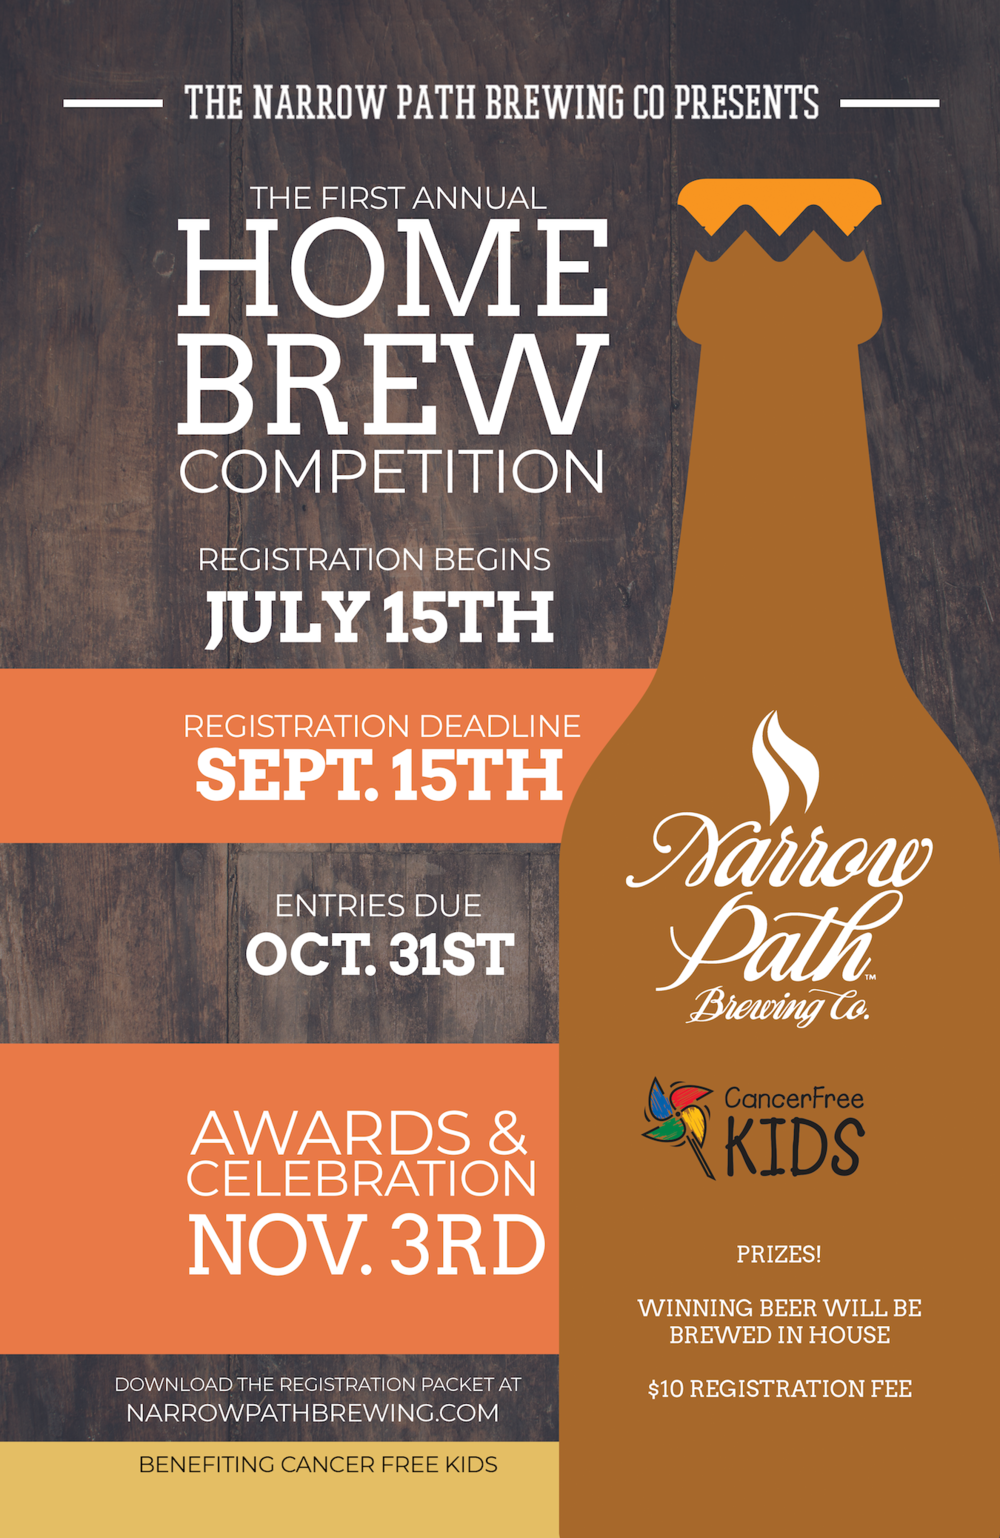 craftbrewcompetitoinposter-small.png